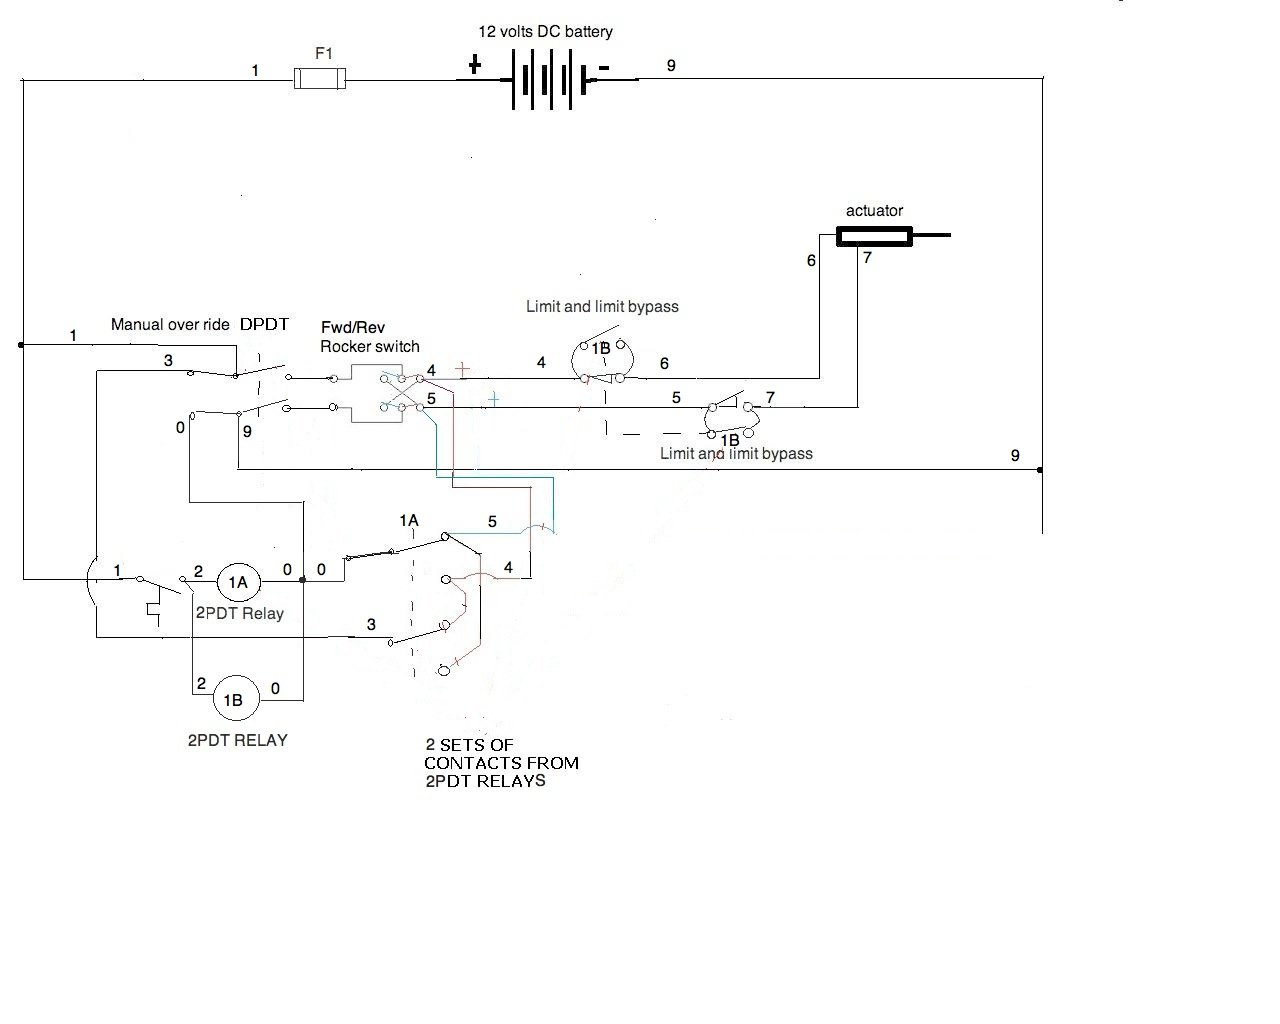 i need a wiring diagram for a 12v application all components you will have the power leads coming in and going out to actuator and the thermostat wire plan cable connectors for them